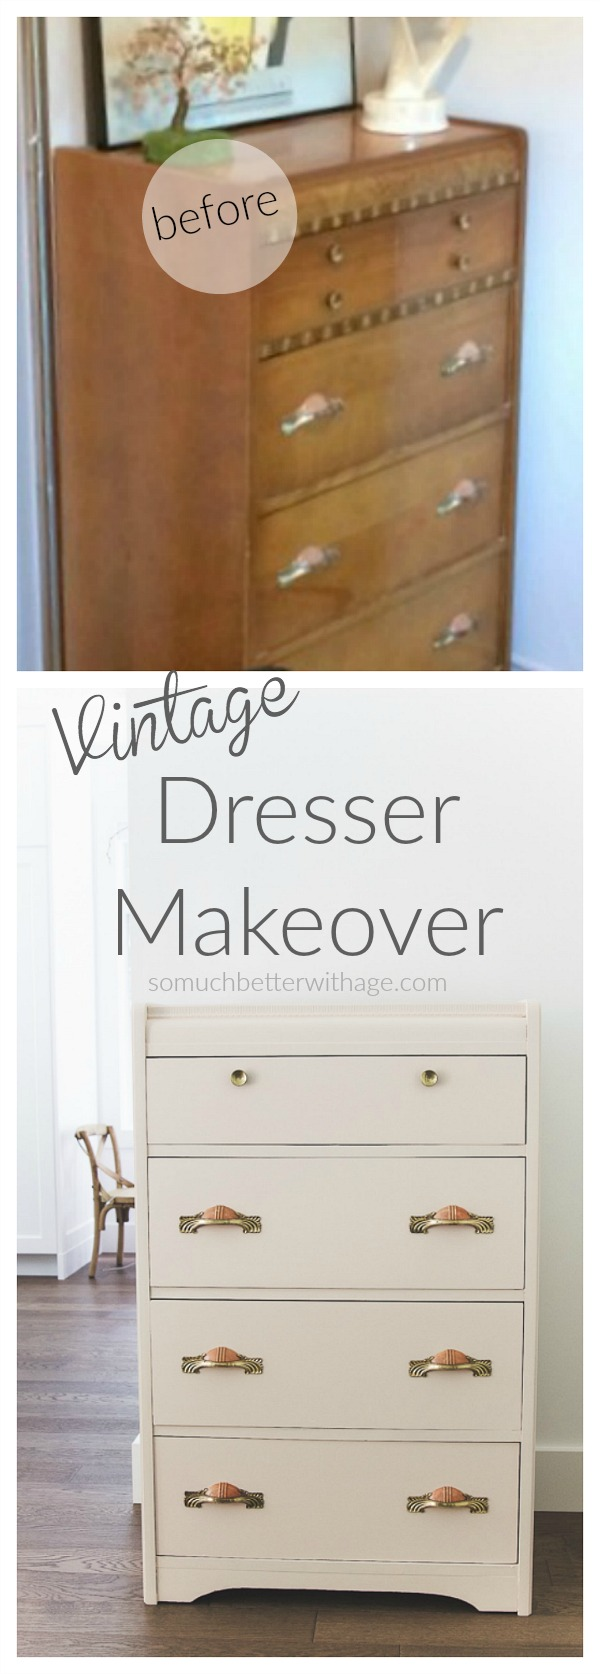 Vintage pink dresser makeover using Fusion Mineral Paint / So Much Better With Age